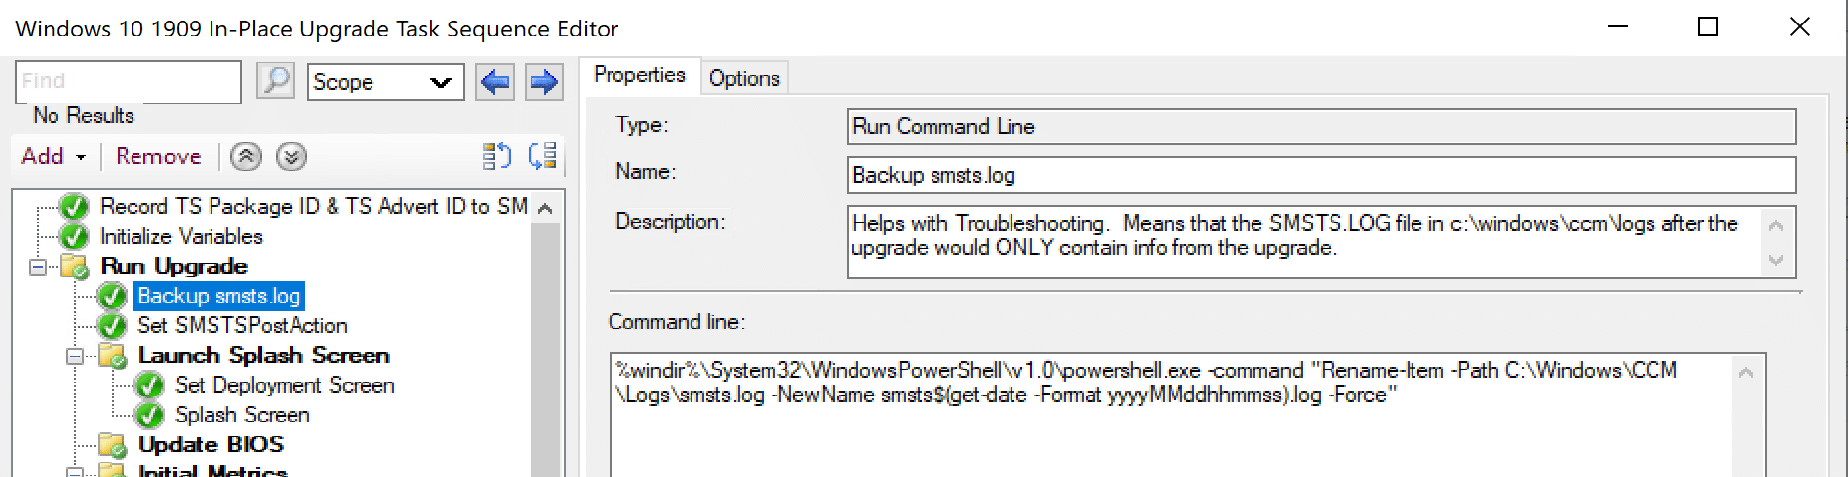 Simple step near start of TS that renames smsts.log